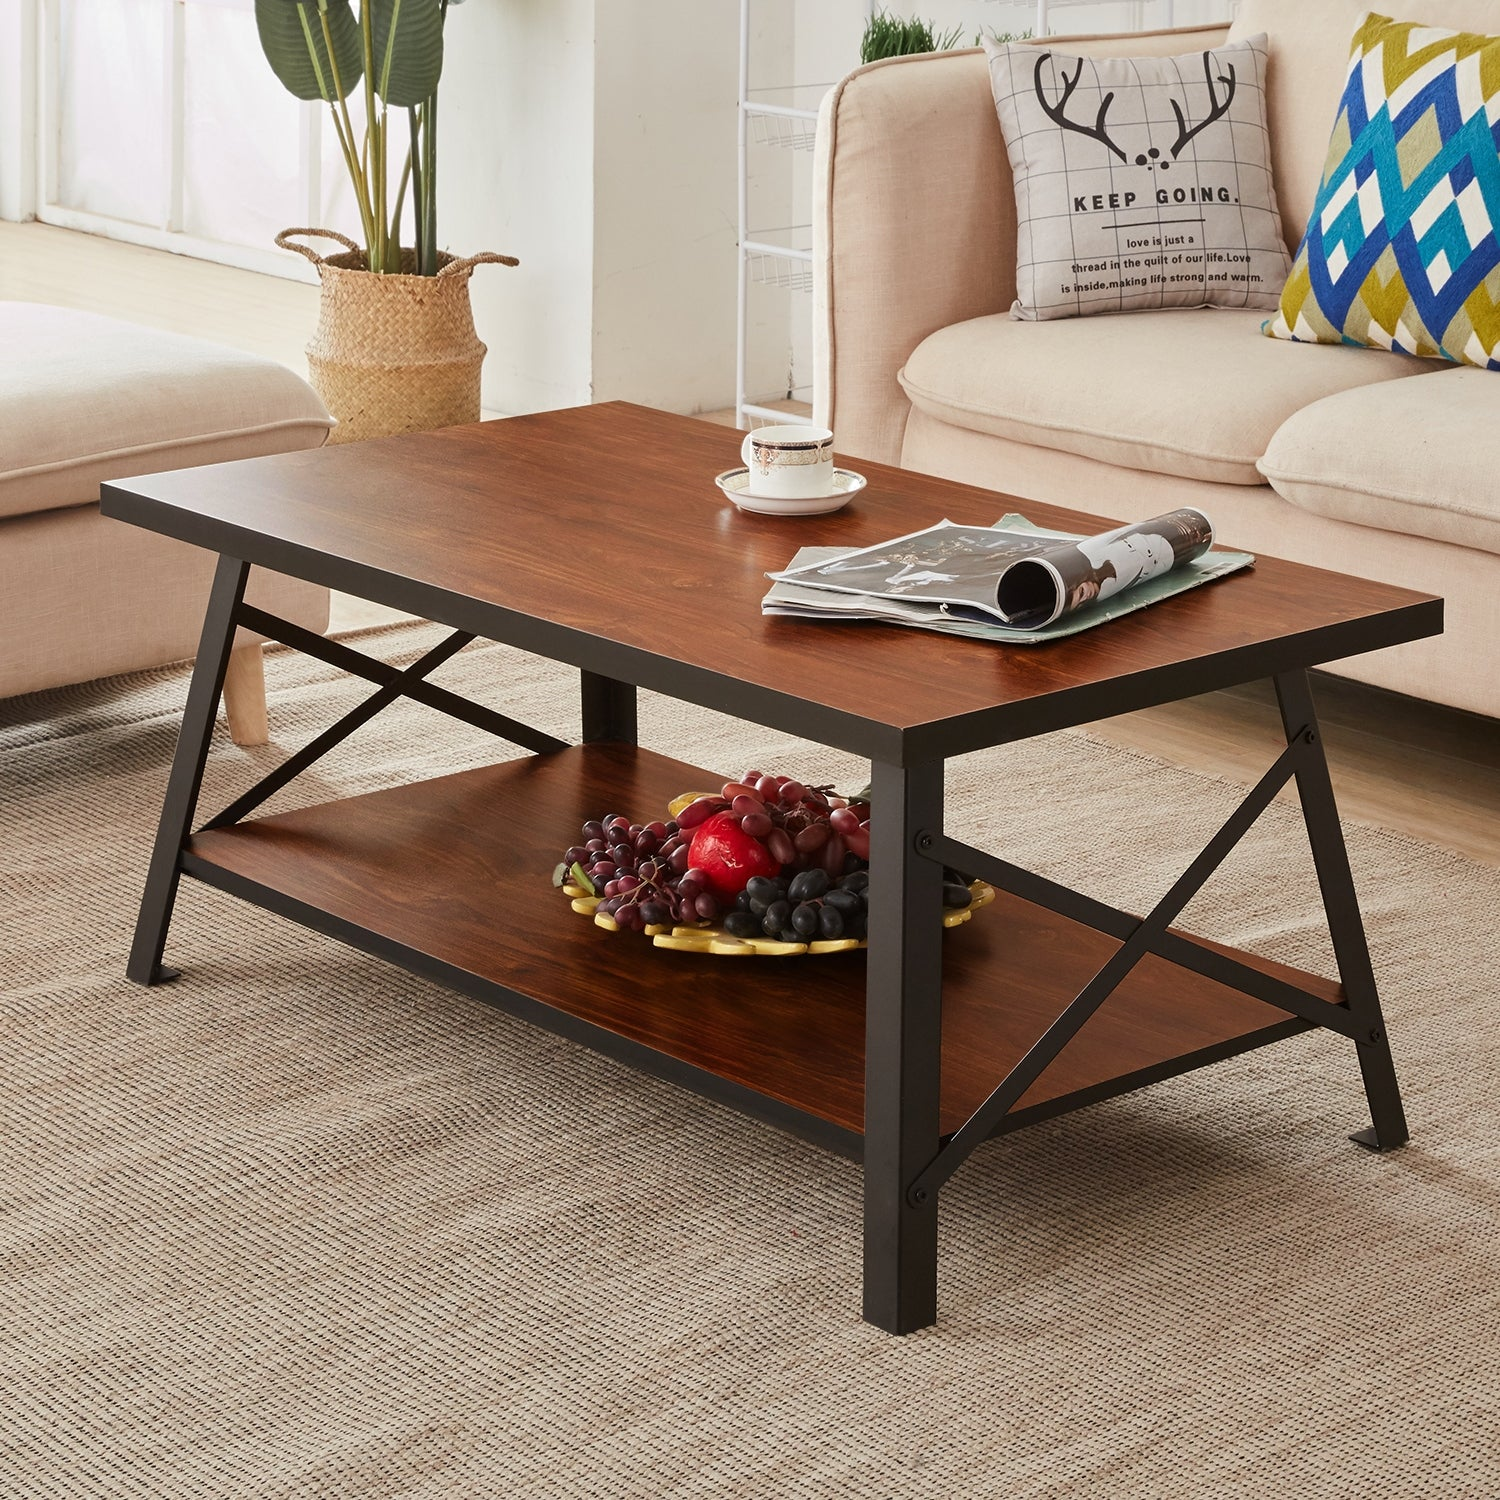 Vecelo coffee table end table sofa table wood finish accent style